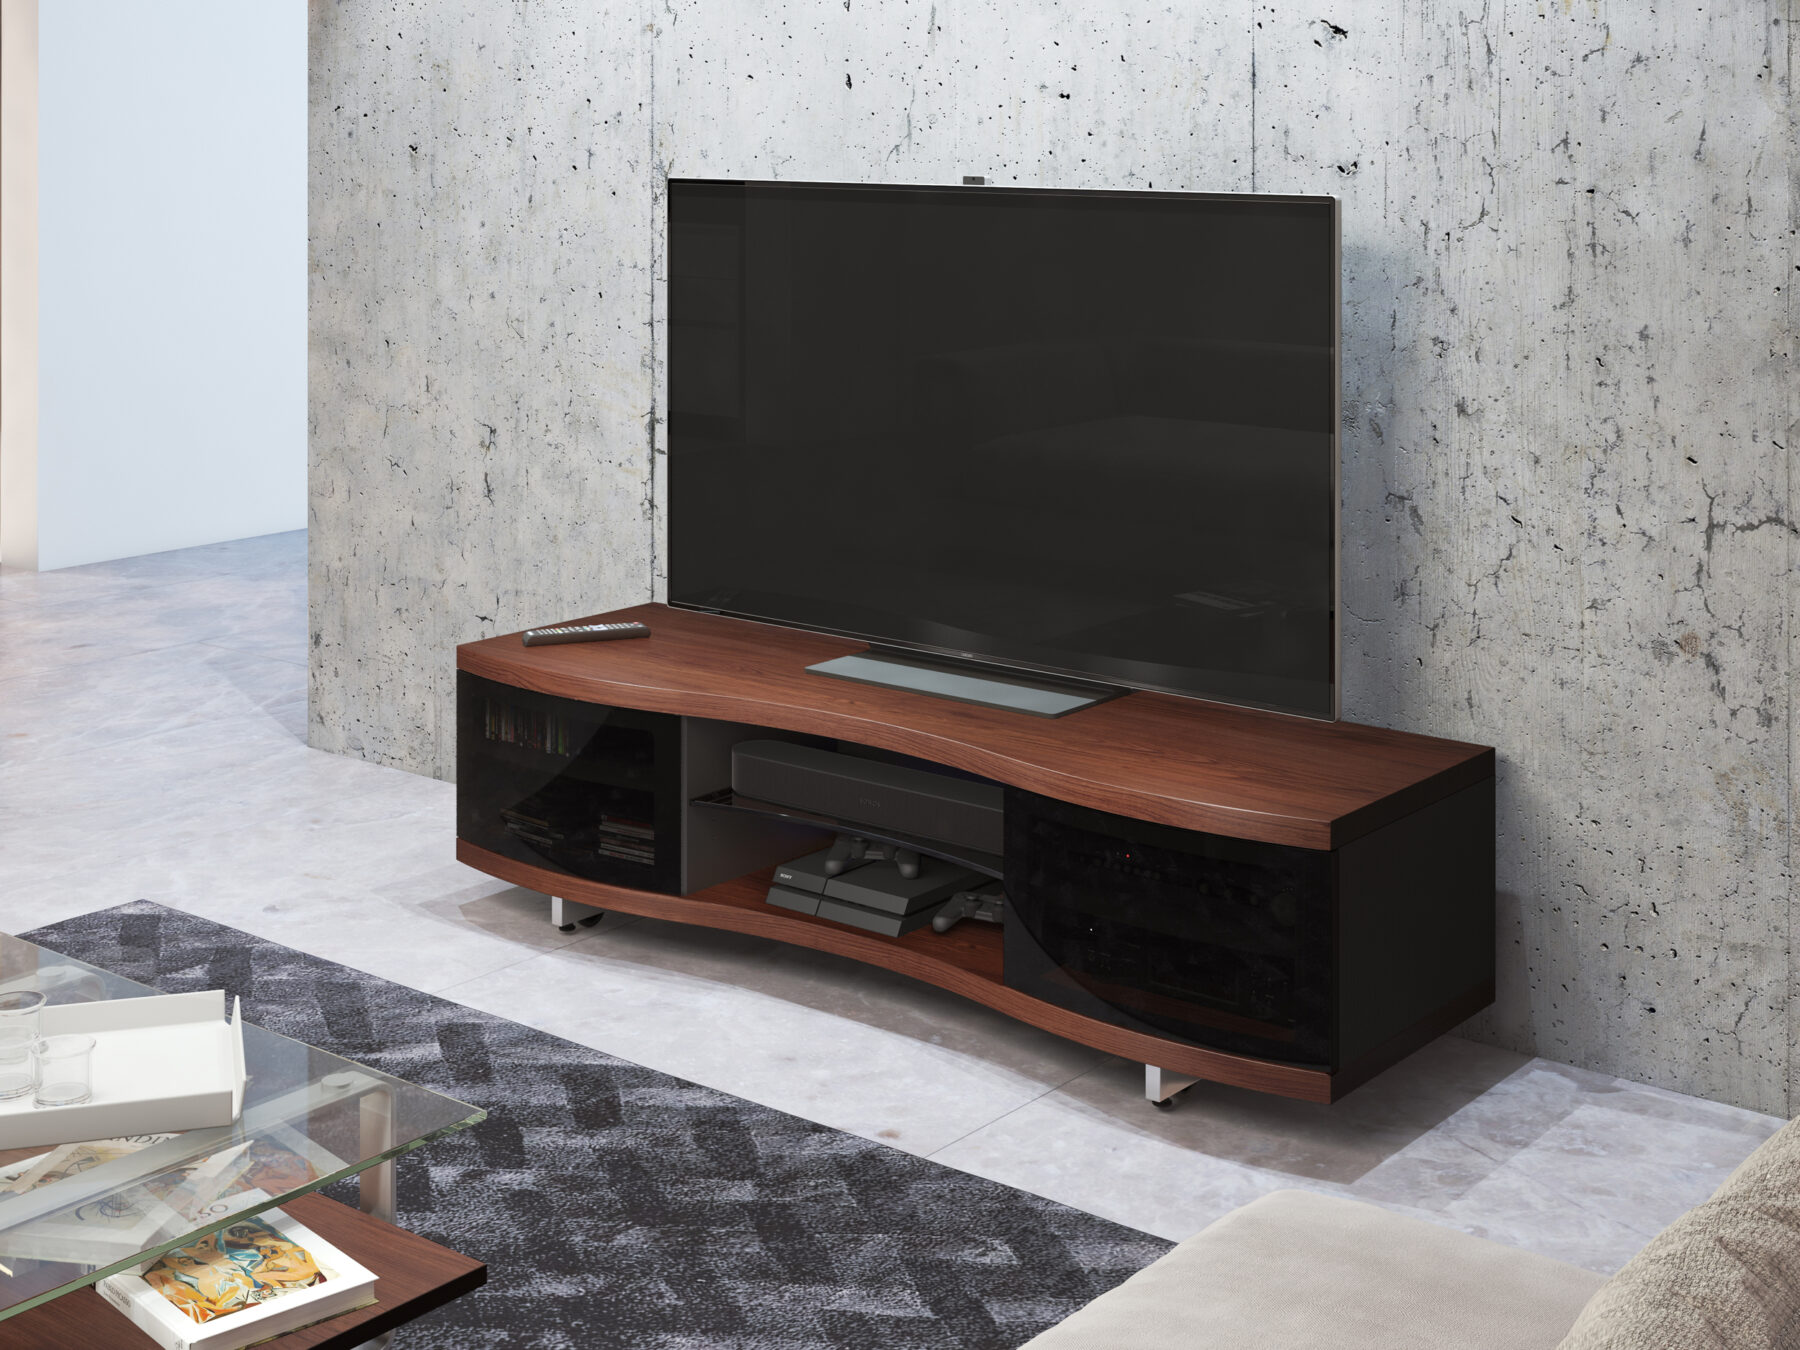 ola-8137-chocolate-bdi-modern-tv-cabinet-4